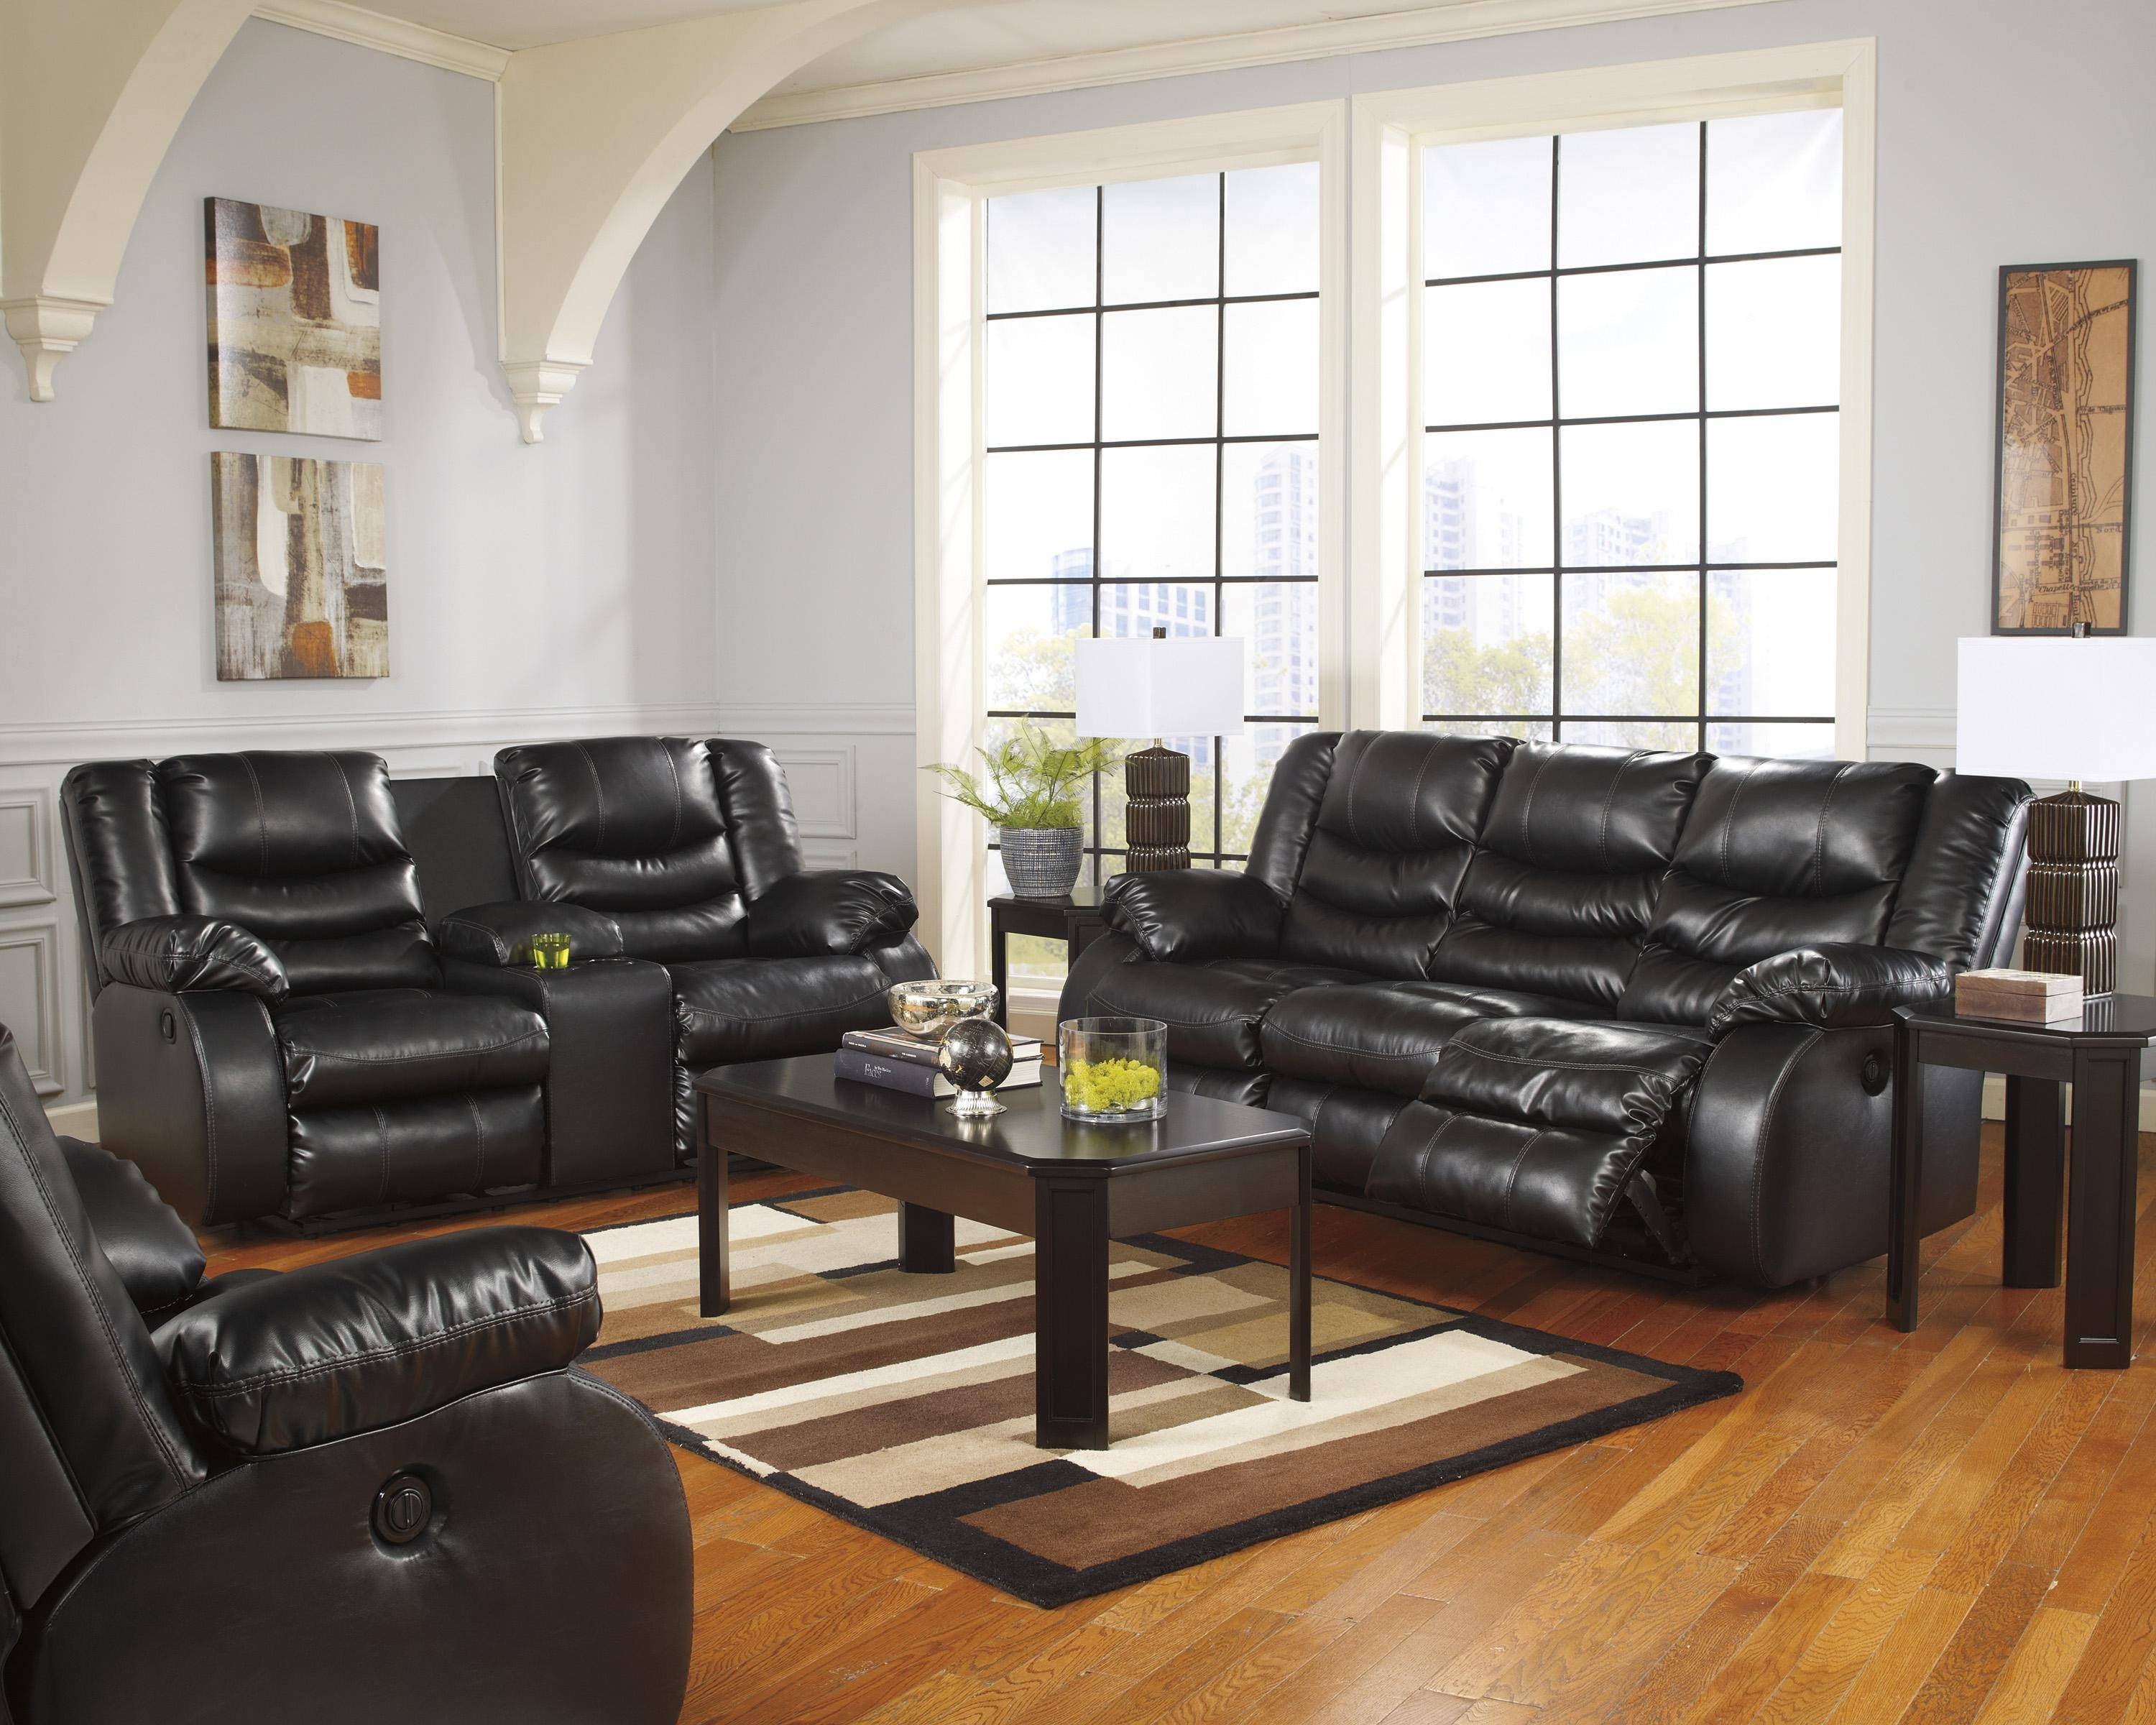 New Ideas Black Leather Sofa Recliner With Ventura Contemporary within Contemporary Black Leather Sofas (Image 20 of 30)